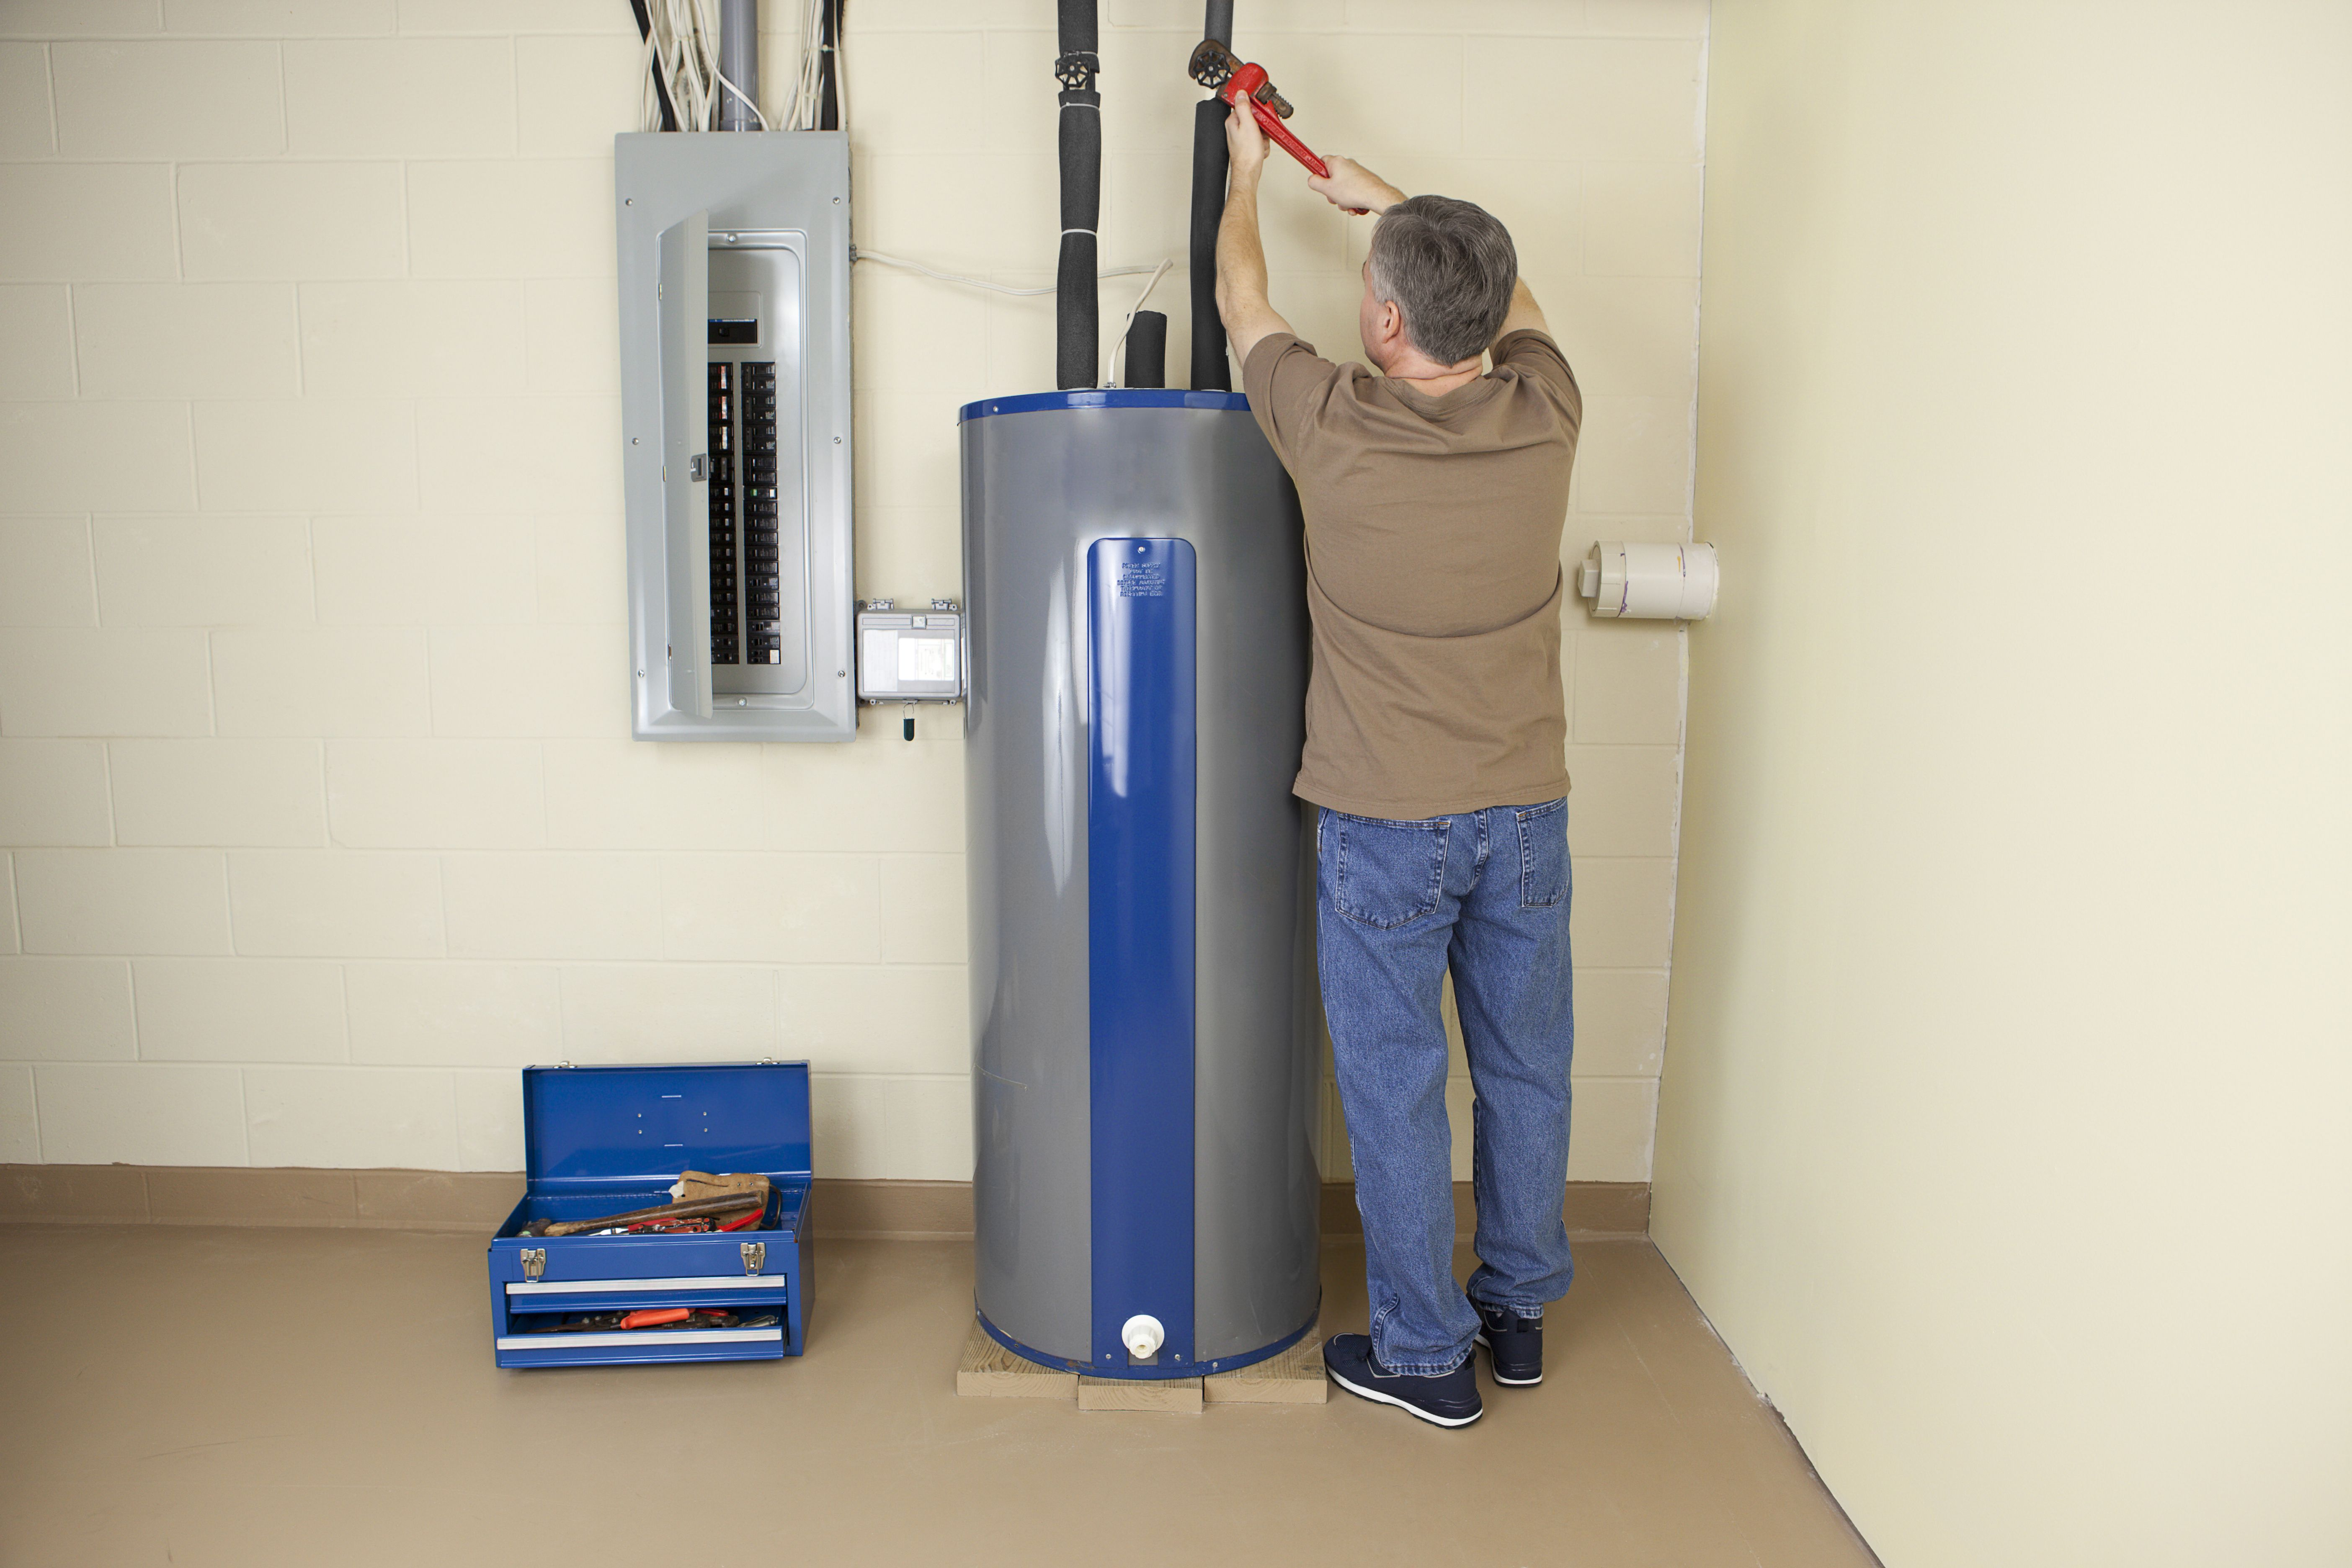 How To Troubleshoot Electric Hot Water Heater Problems Change The Temperature On Your